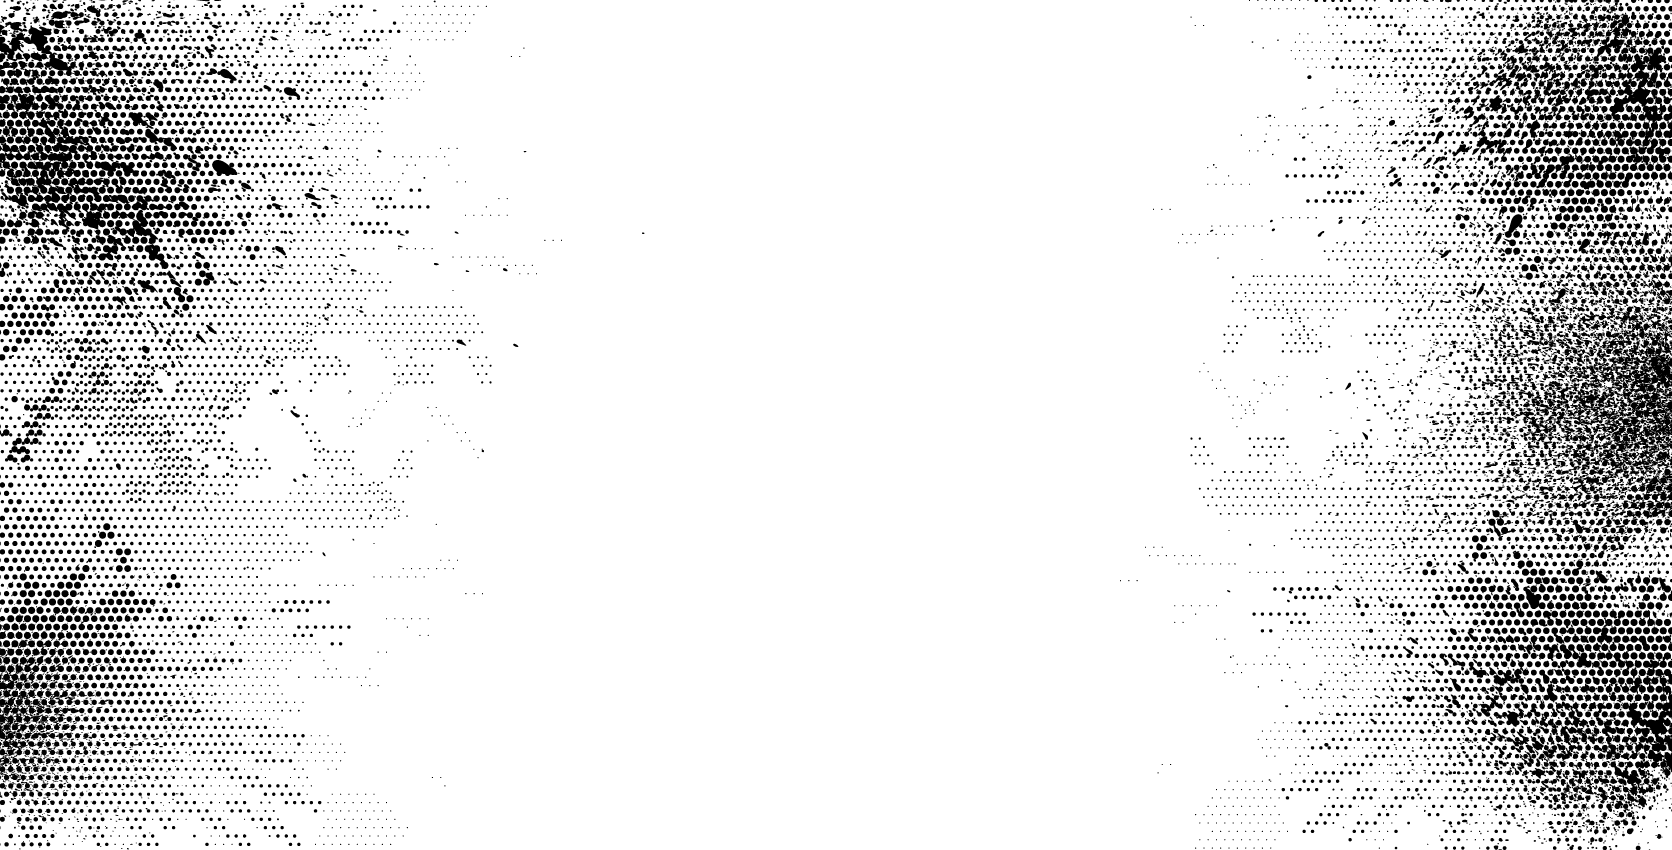 Dirt Overlay Png (+).